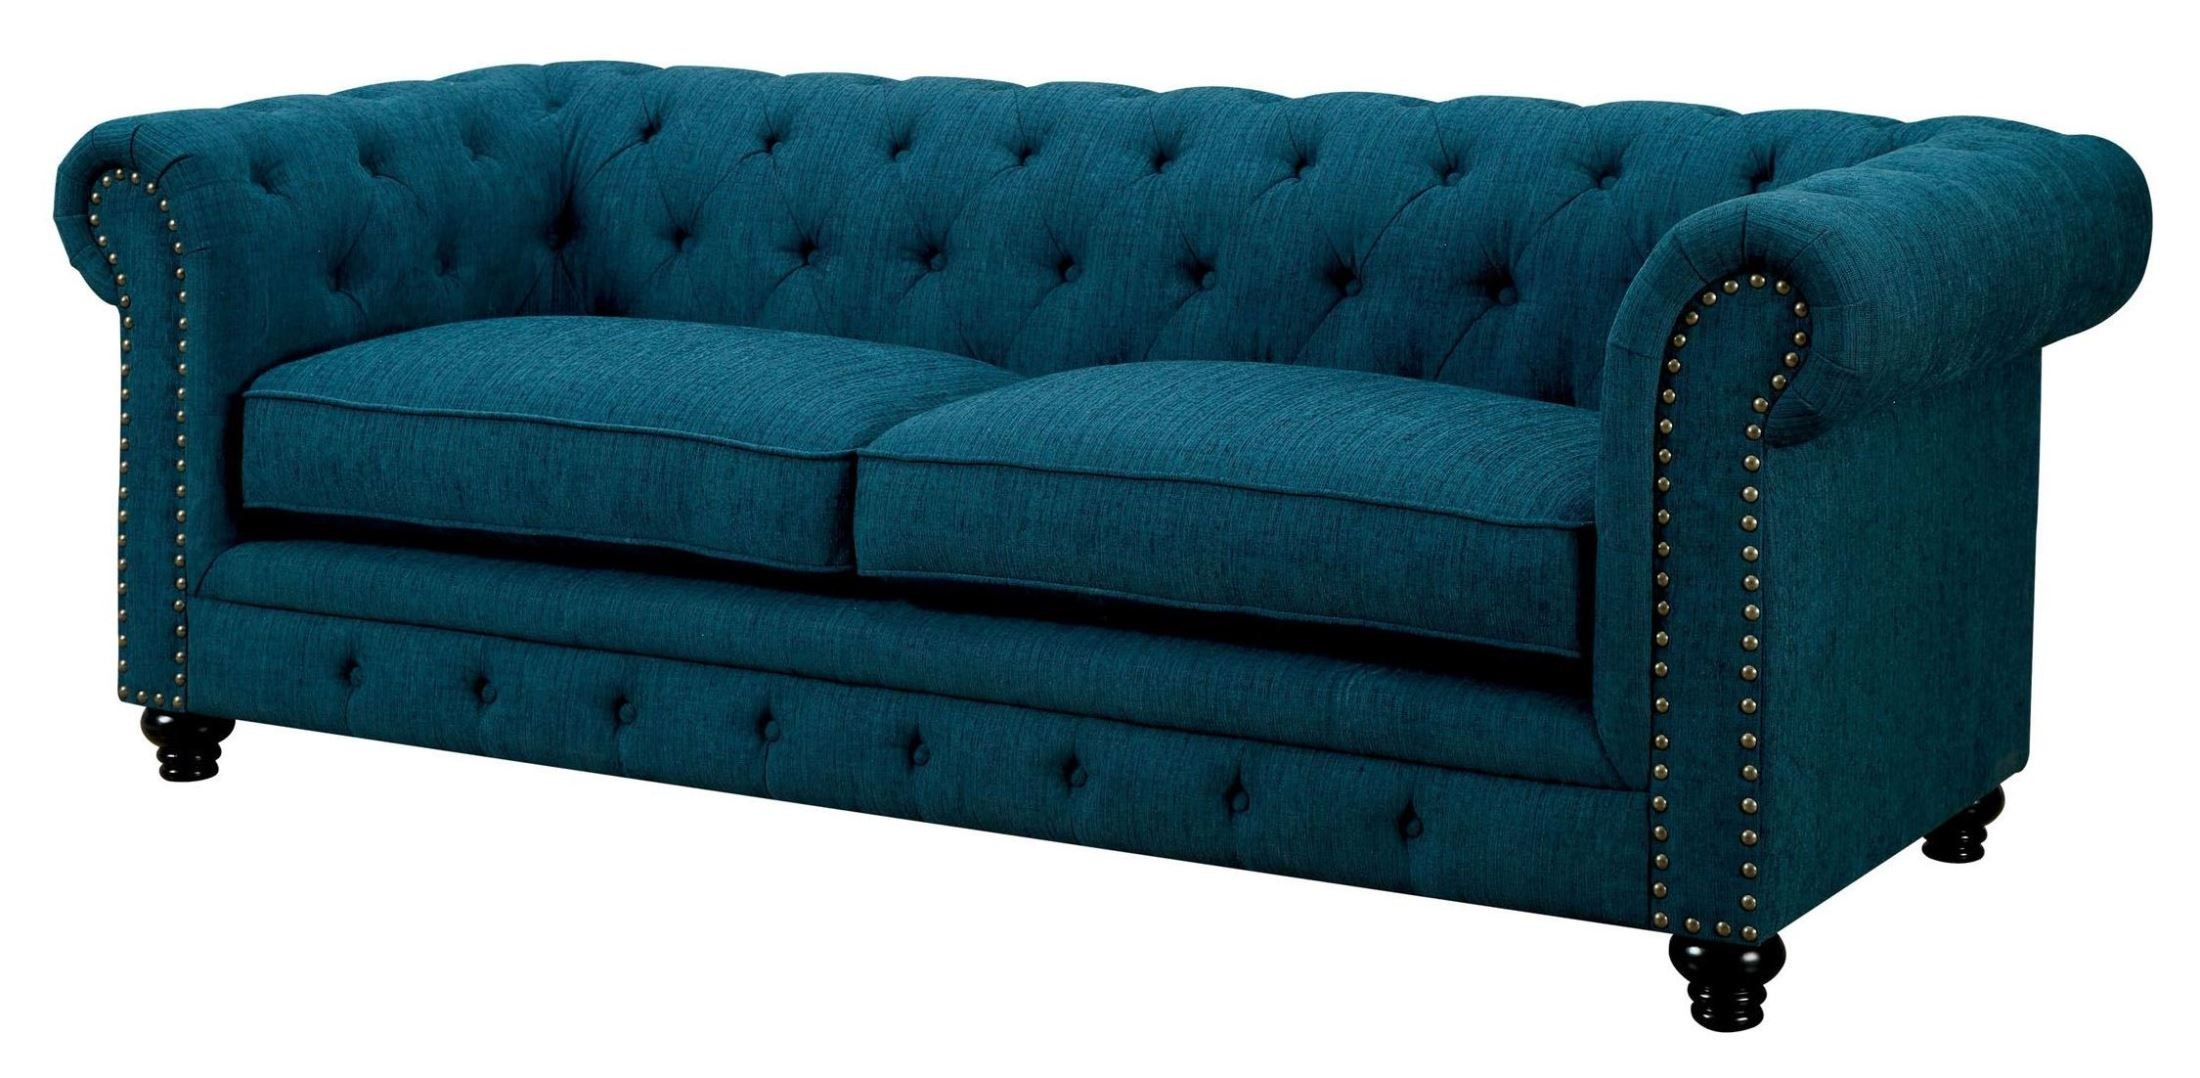 Stanford Dark Teal Fabric Sofa Coleman Furniture